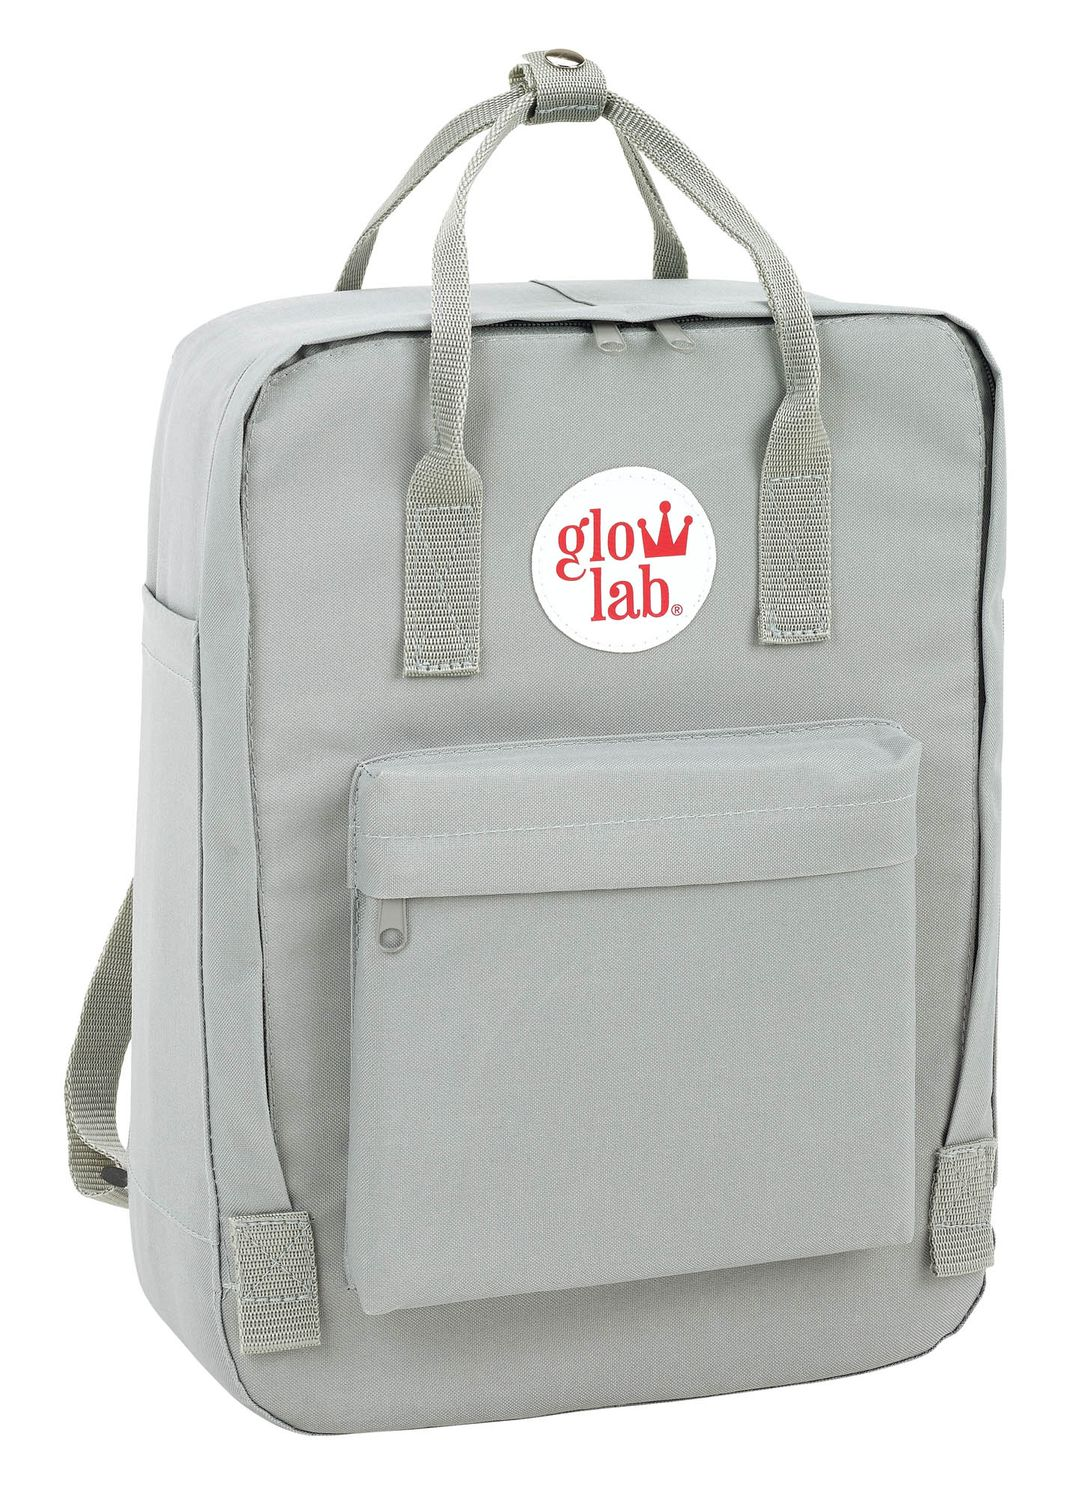 Glowlab Backpack with Handles Warm Grey – image 1